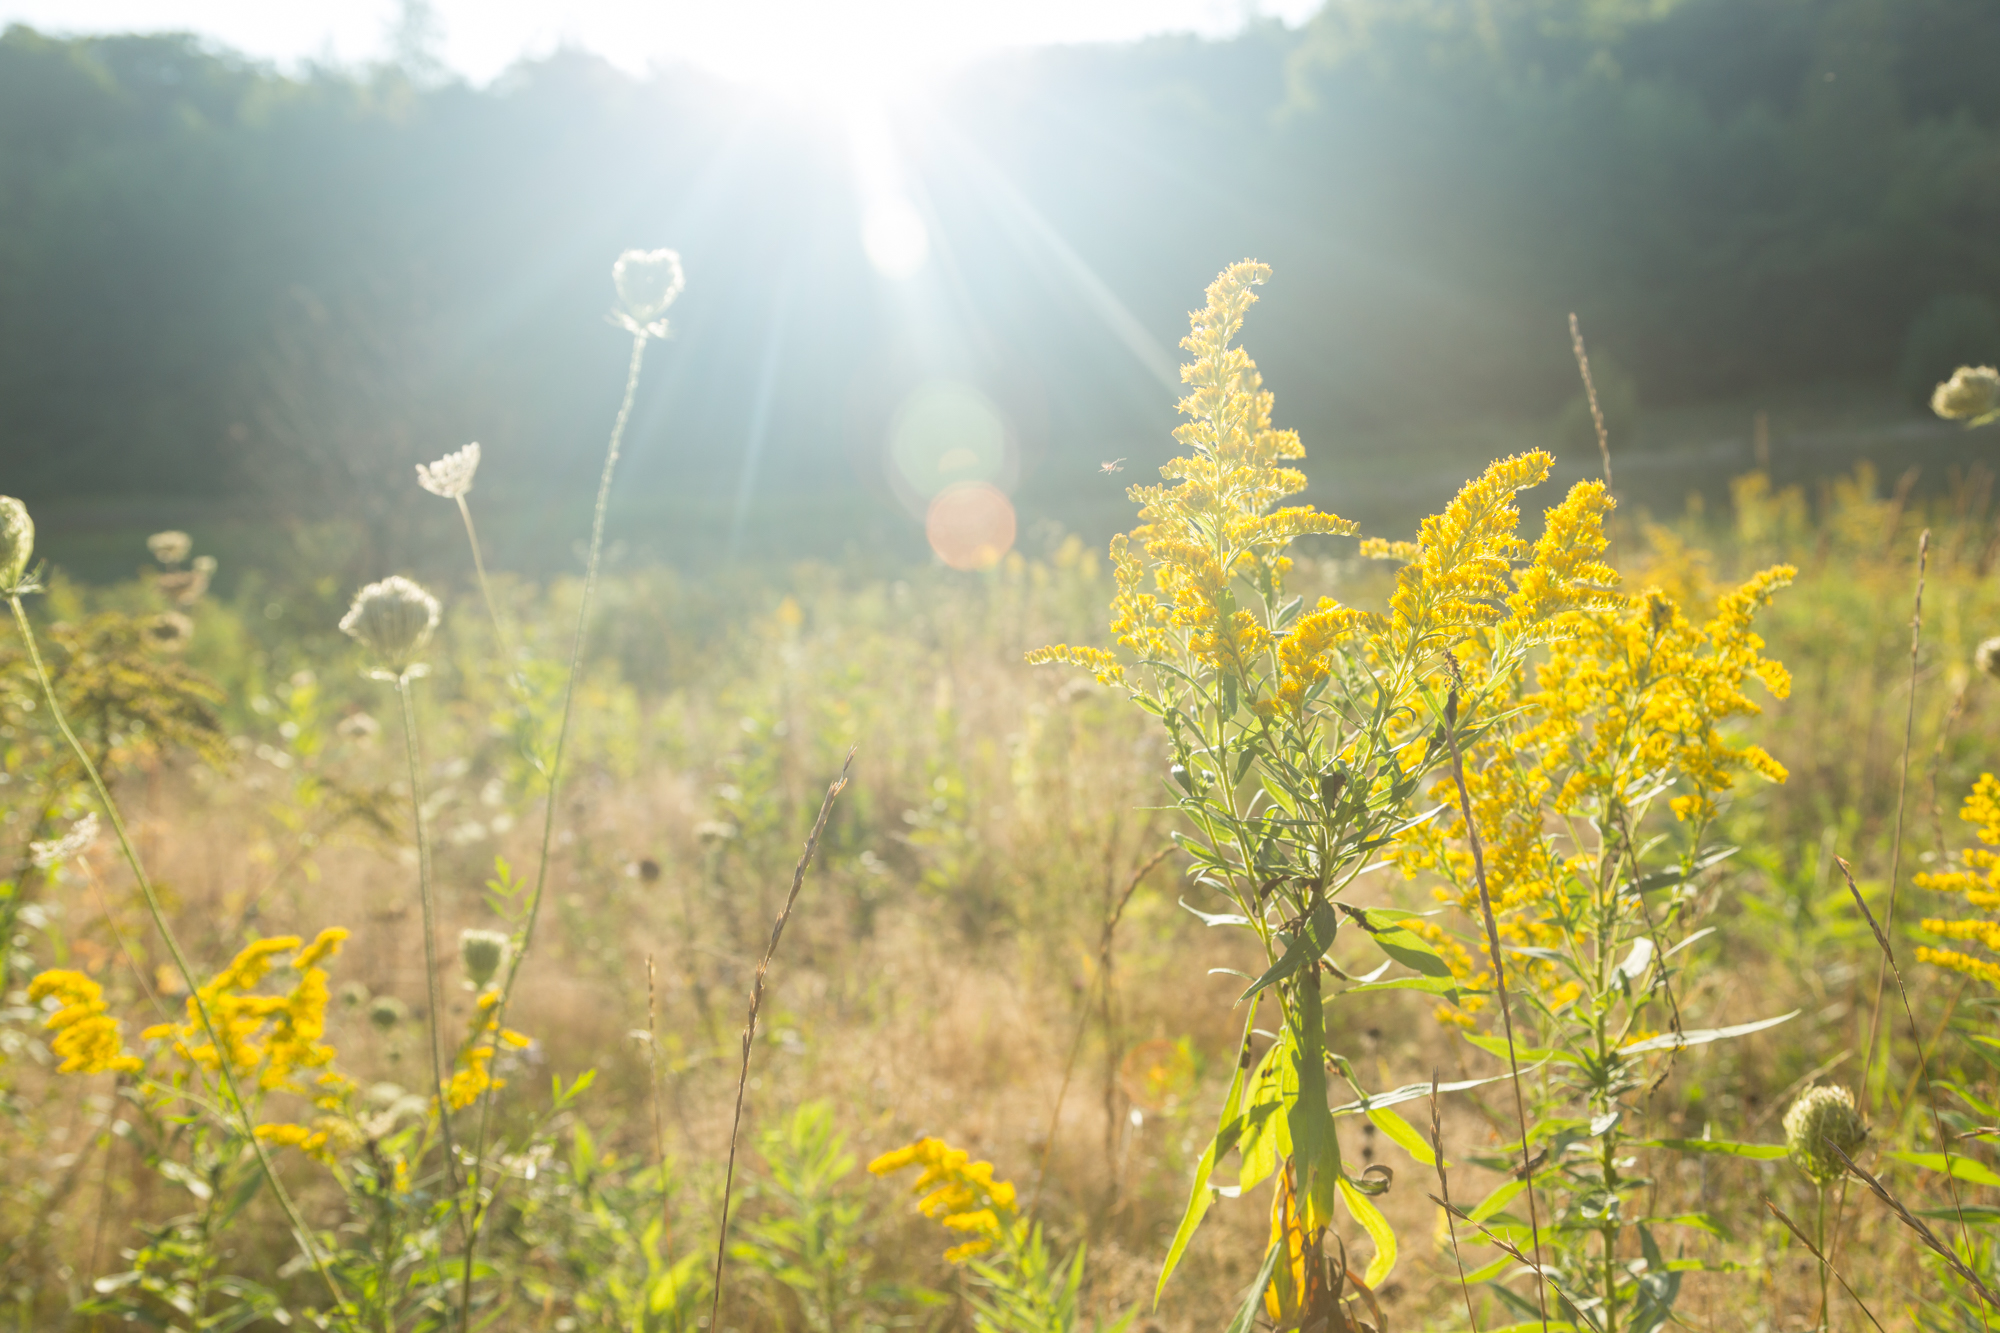 Late summer field in the Catskill Mountains of New York.